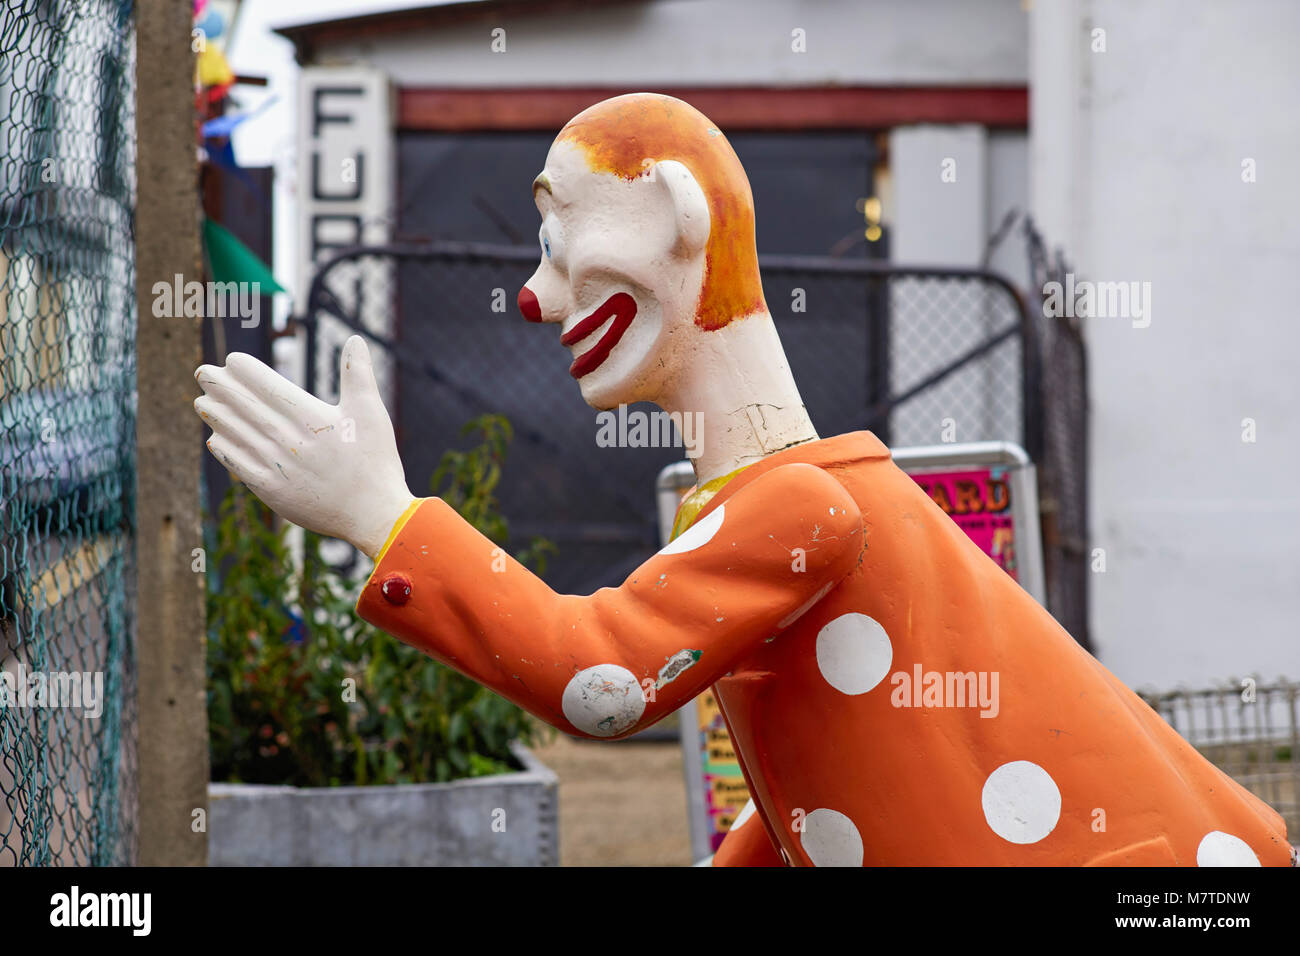 A clown figure from Dreamland for sale in a store in Margate - Stock Image